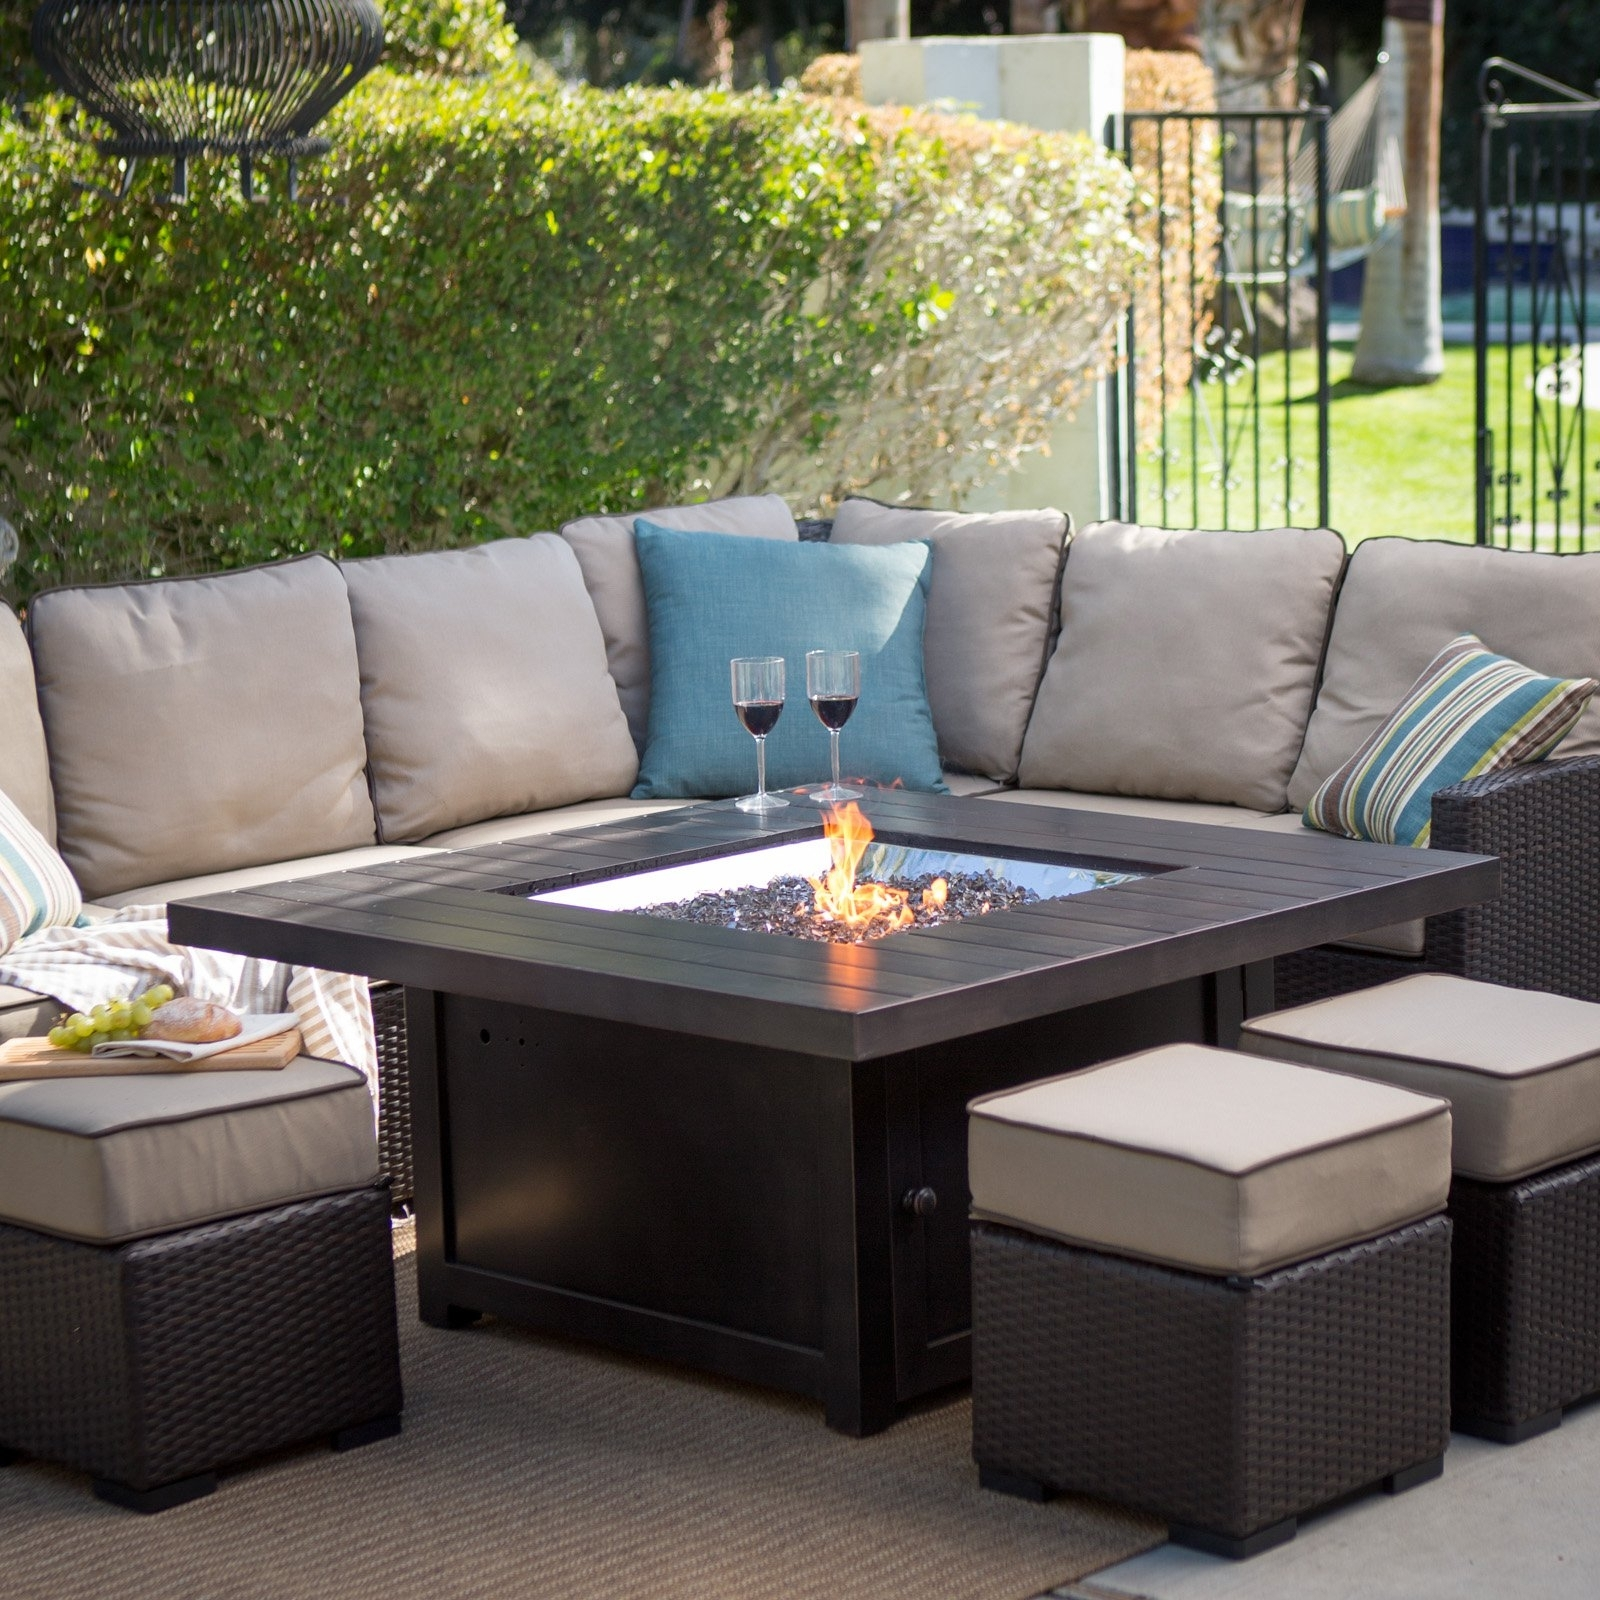 Furniture: High Quality Patio Furniture Columbus Ohio And Fire Pit Intended For Recent Patio Conversation Sets With Gas Fire Pit (View 5 of 20)